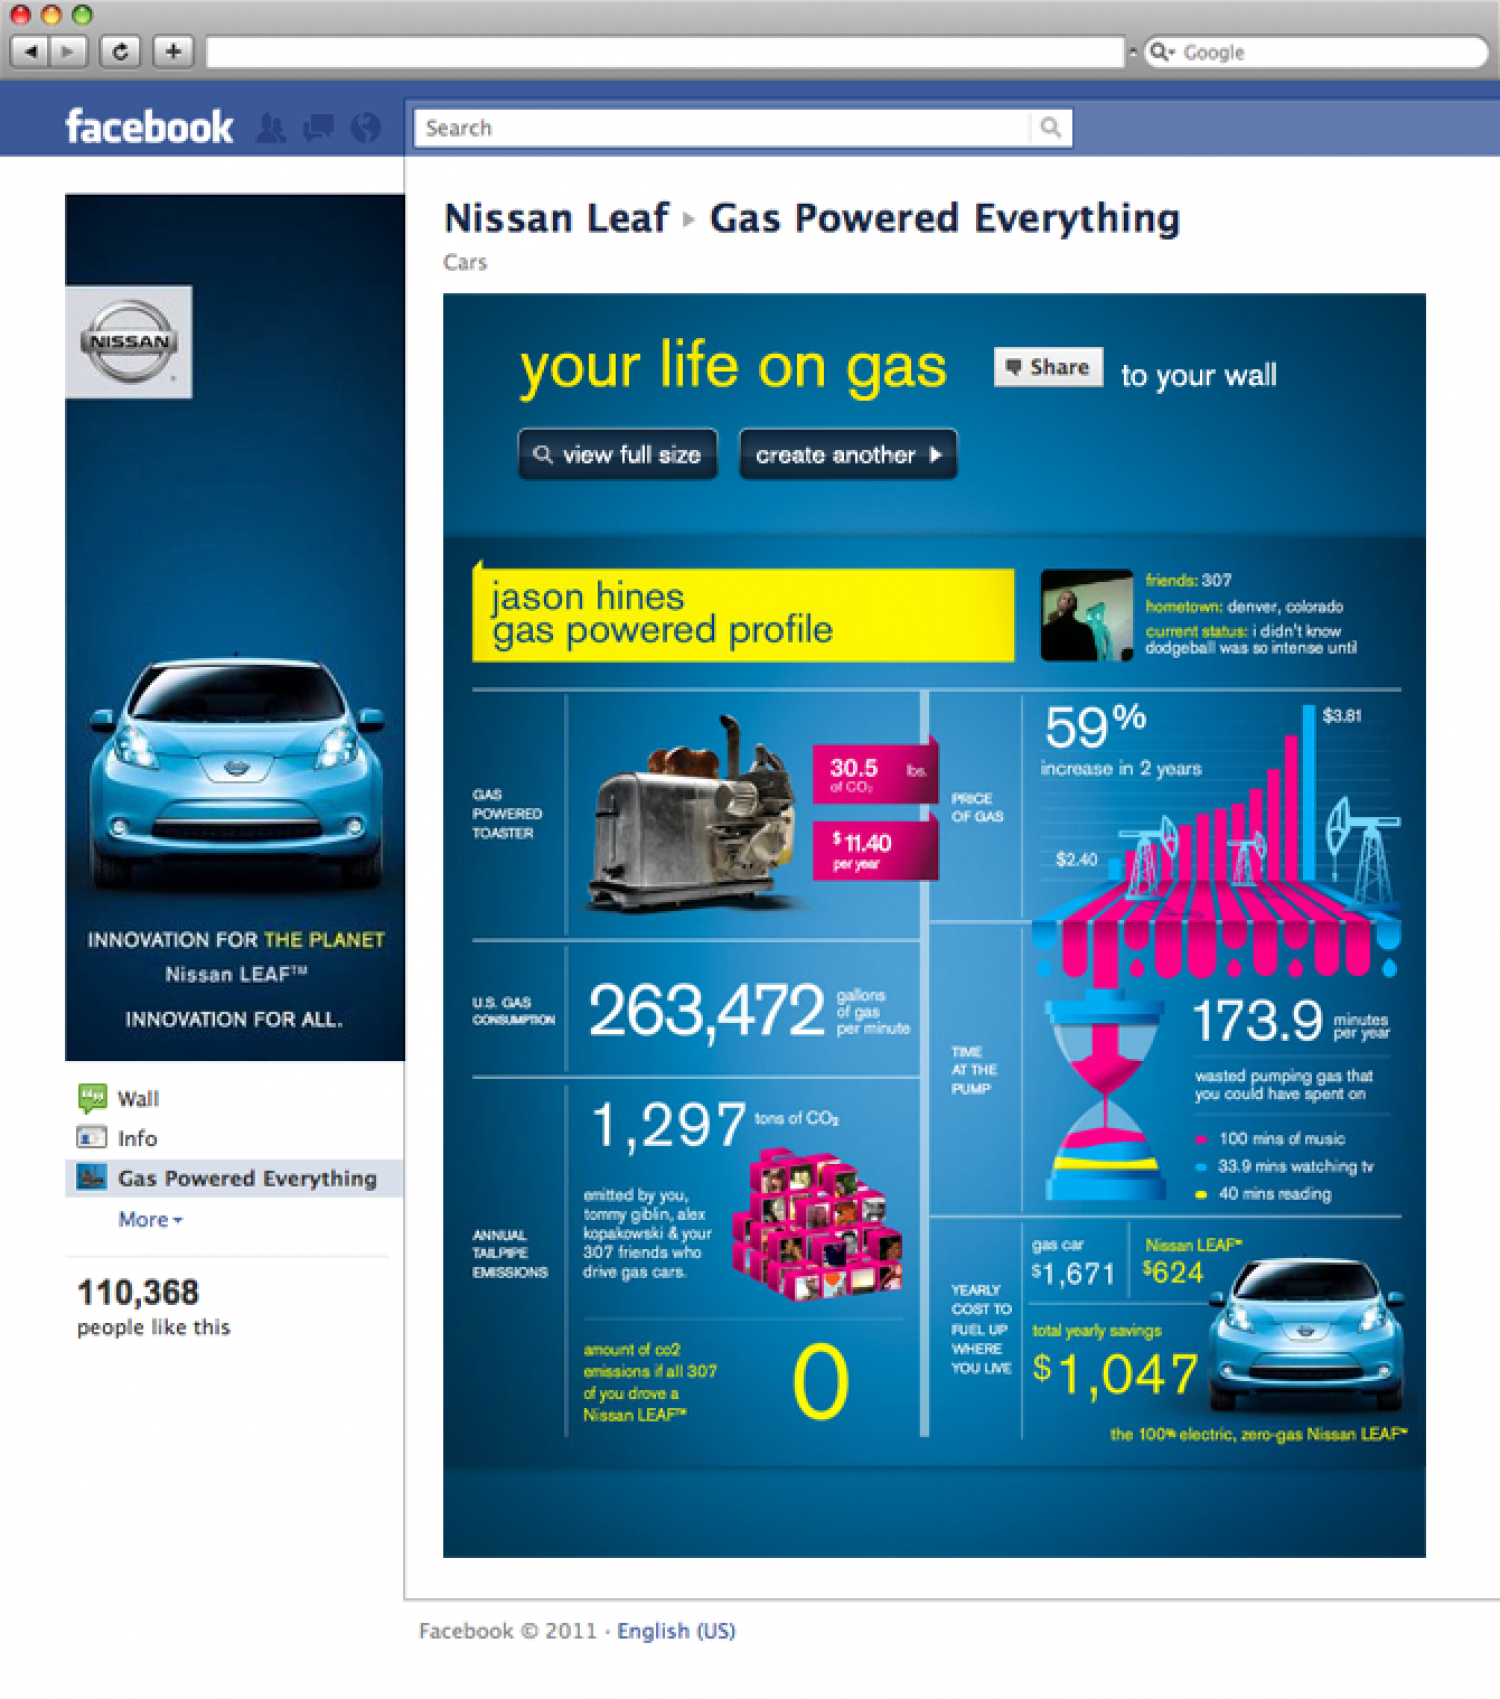 Nissan LEAF - Gas Powered Everything Infographic